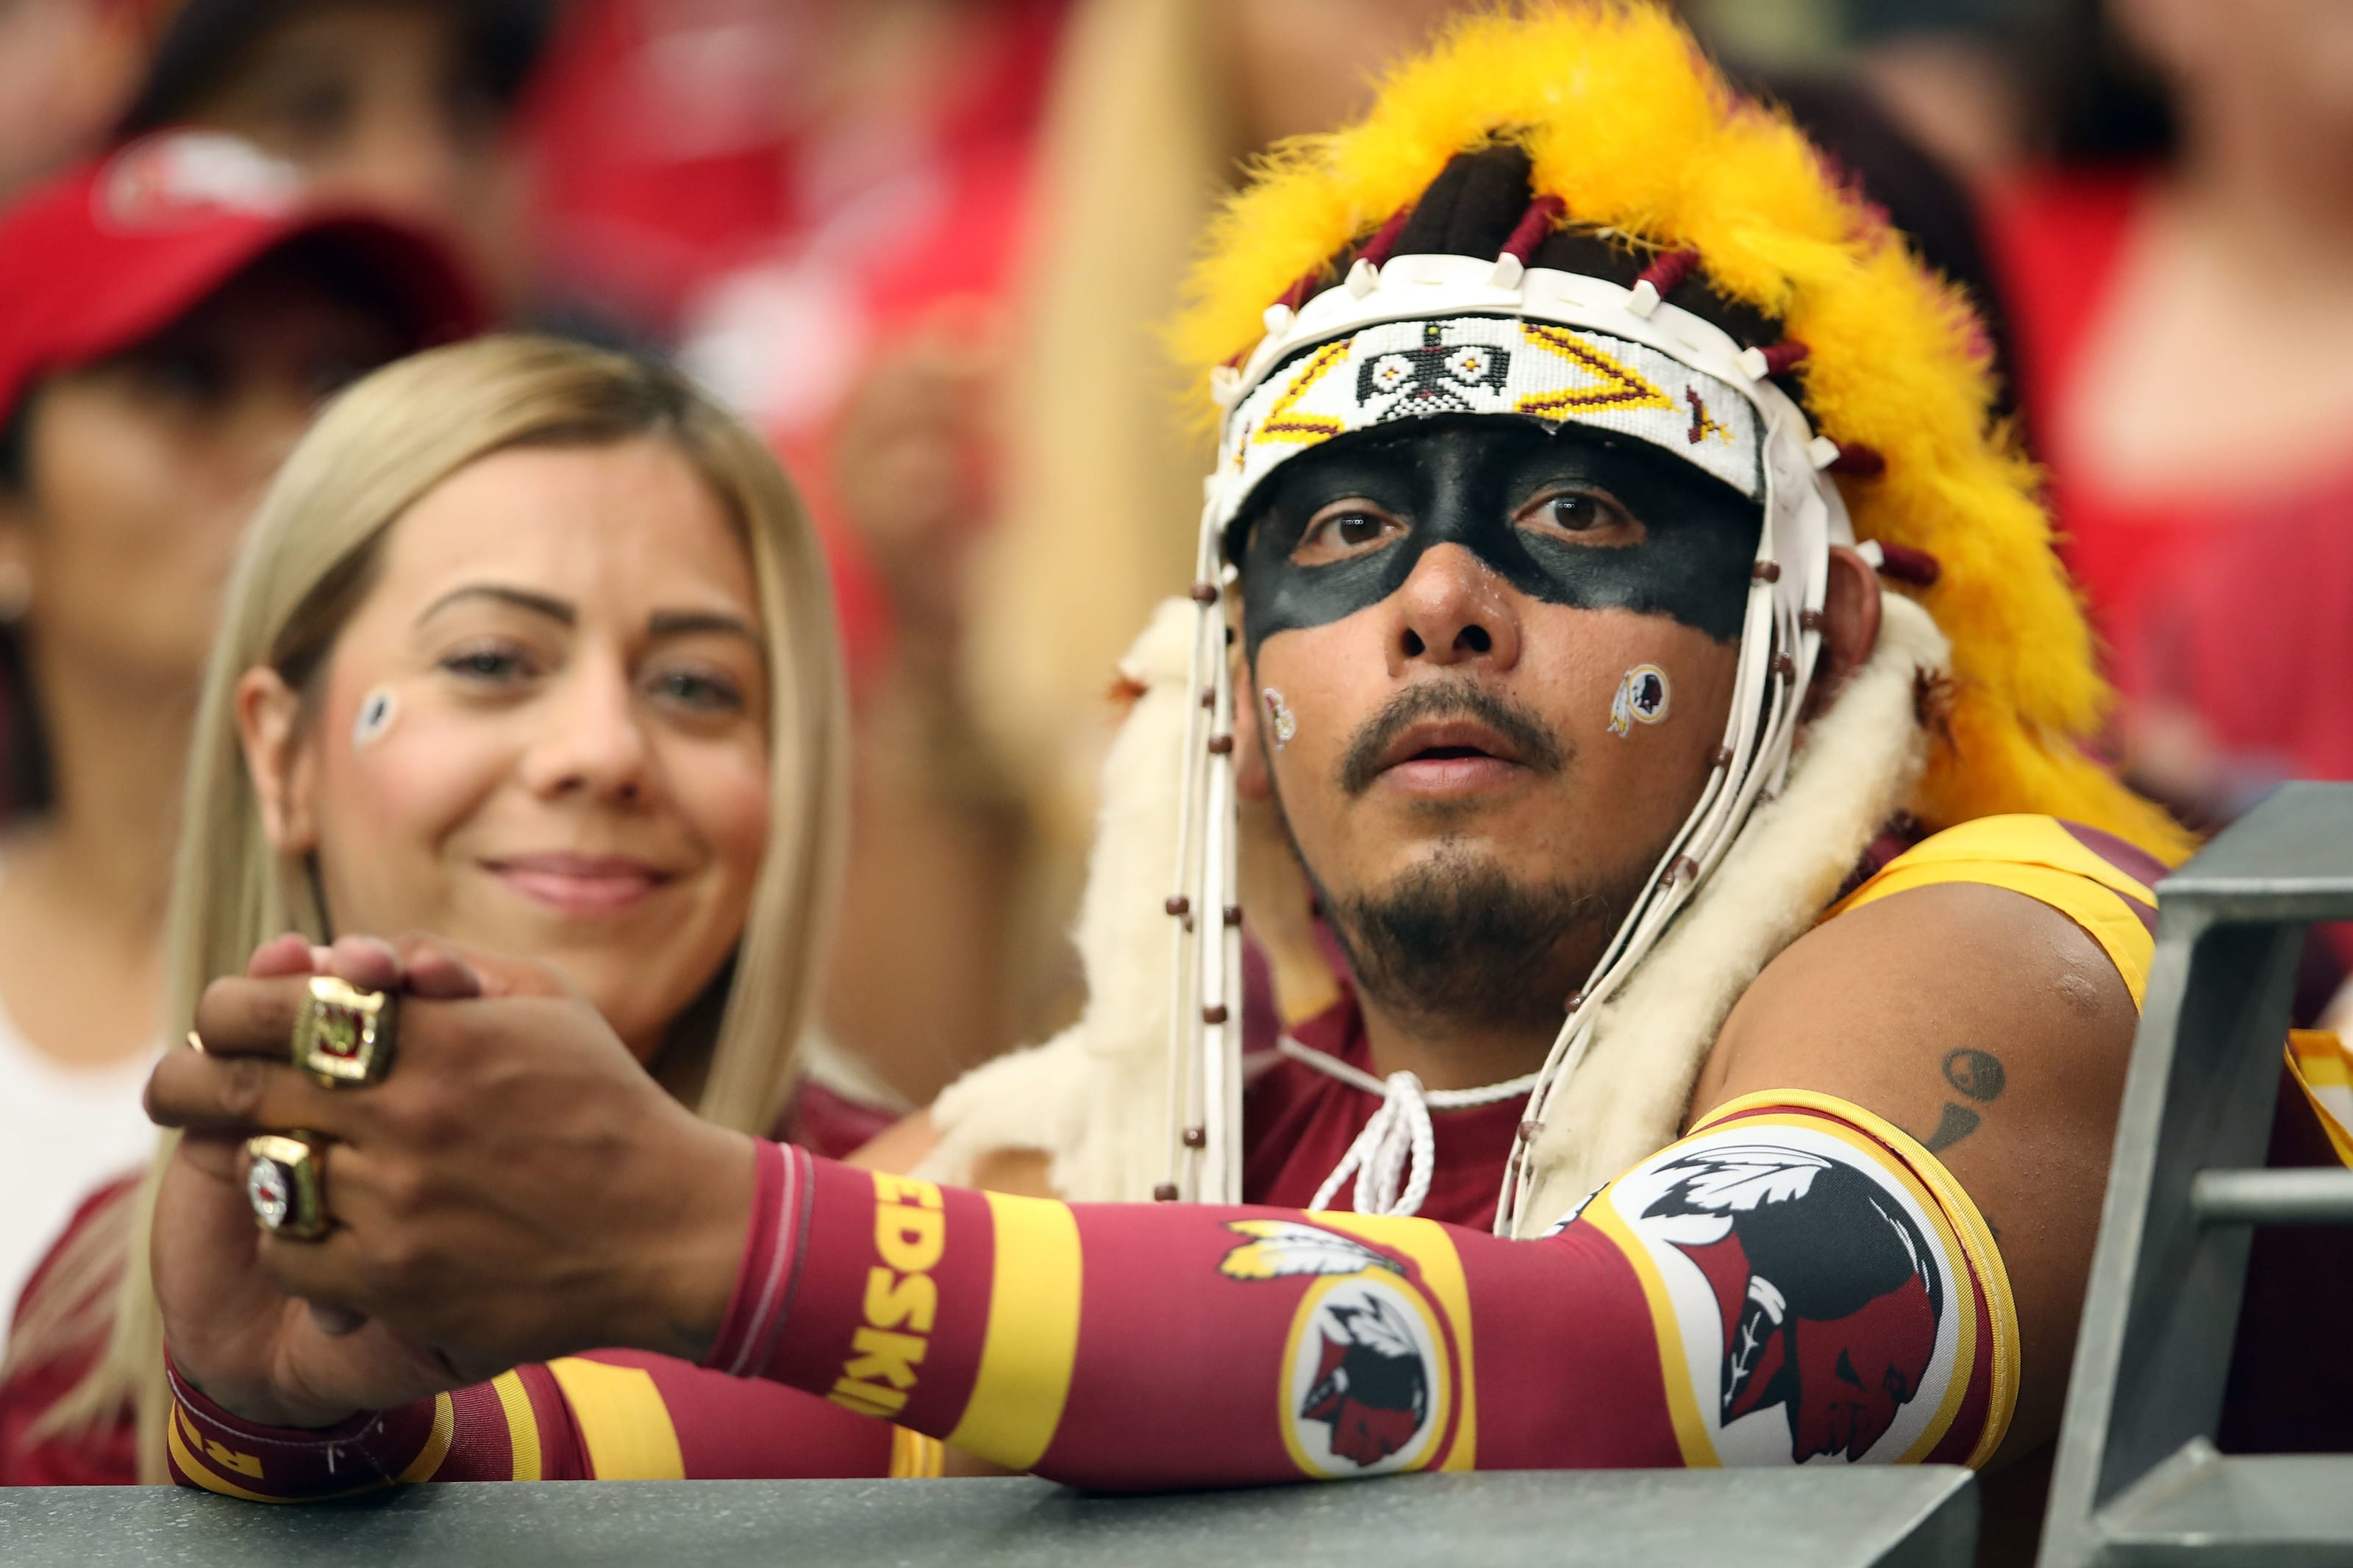 Chat to cam Glendale